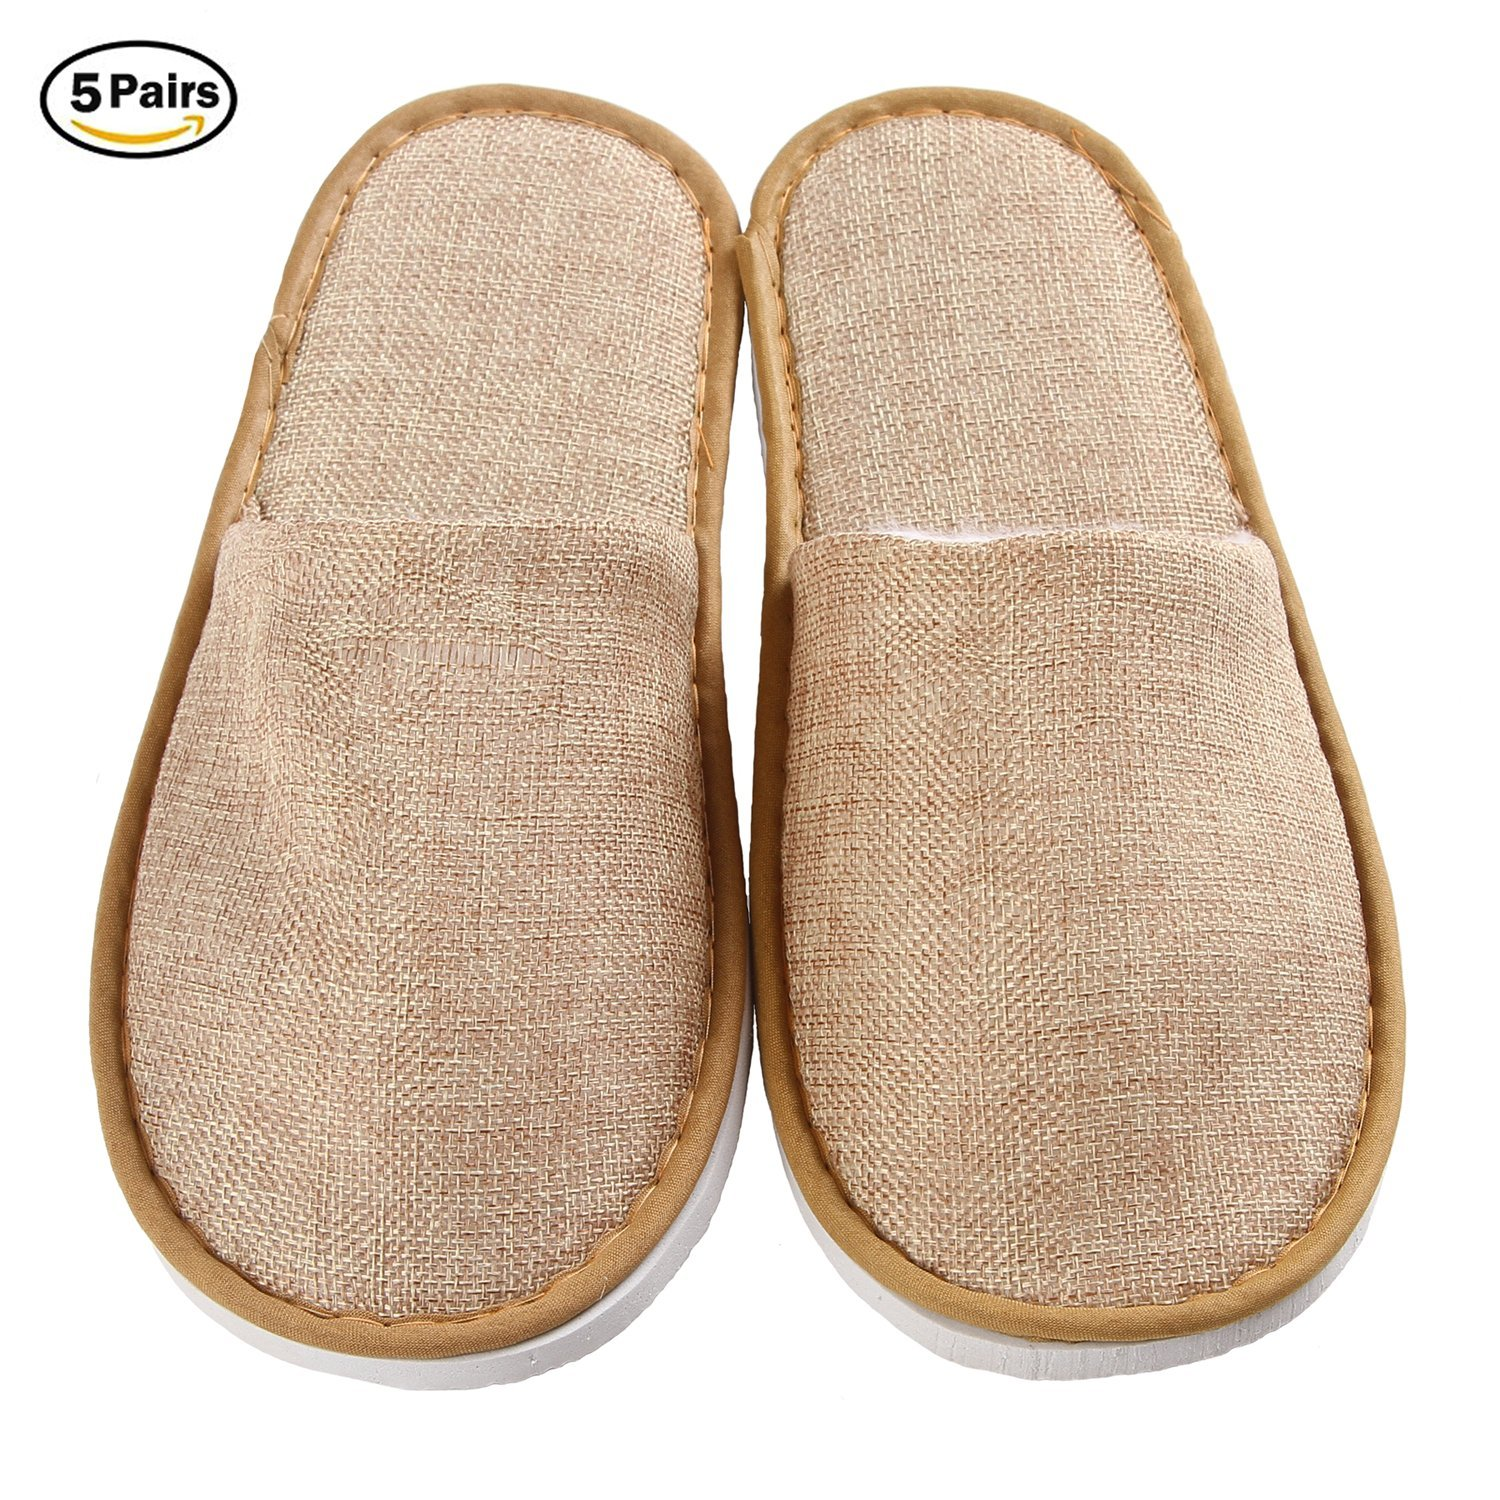 5 Pairs Disposable Slippers for Guests, Closed Toe Spa Slippers for Women and Men